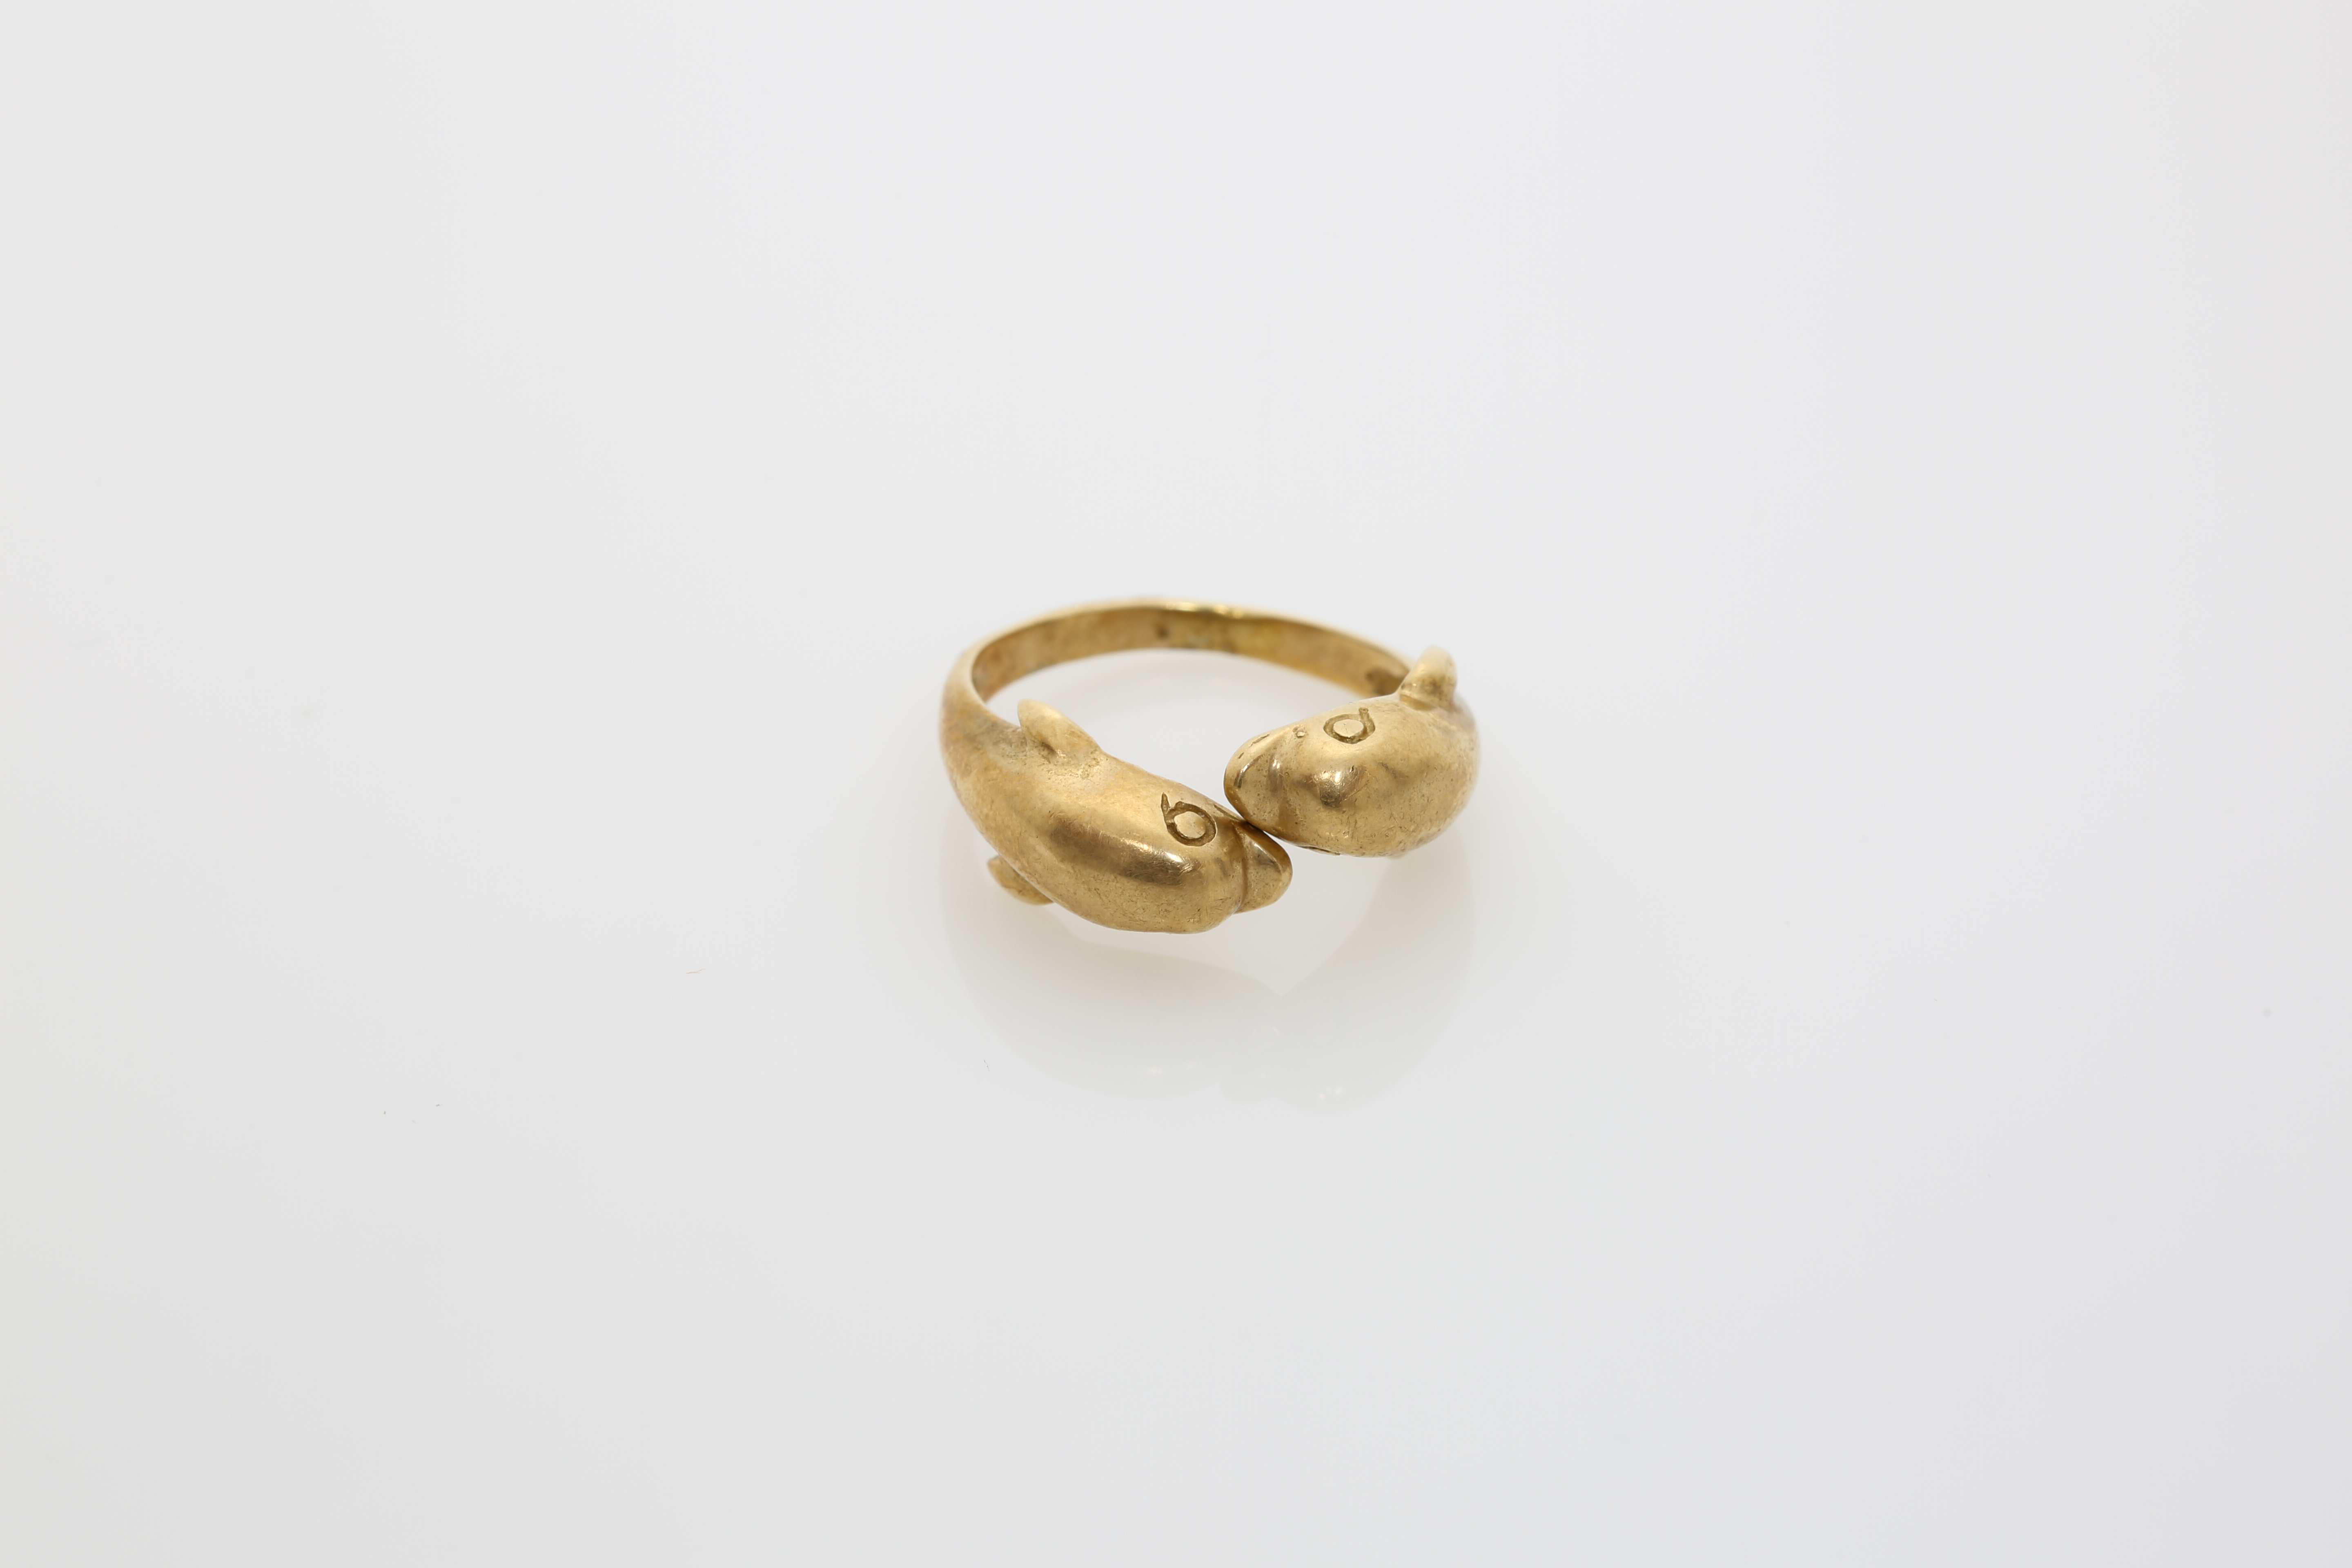 A 14K gold ring with dolphins. Approx: 5 gr - Image 2 of 2